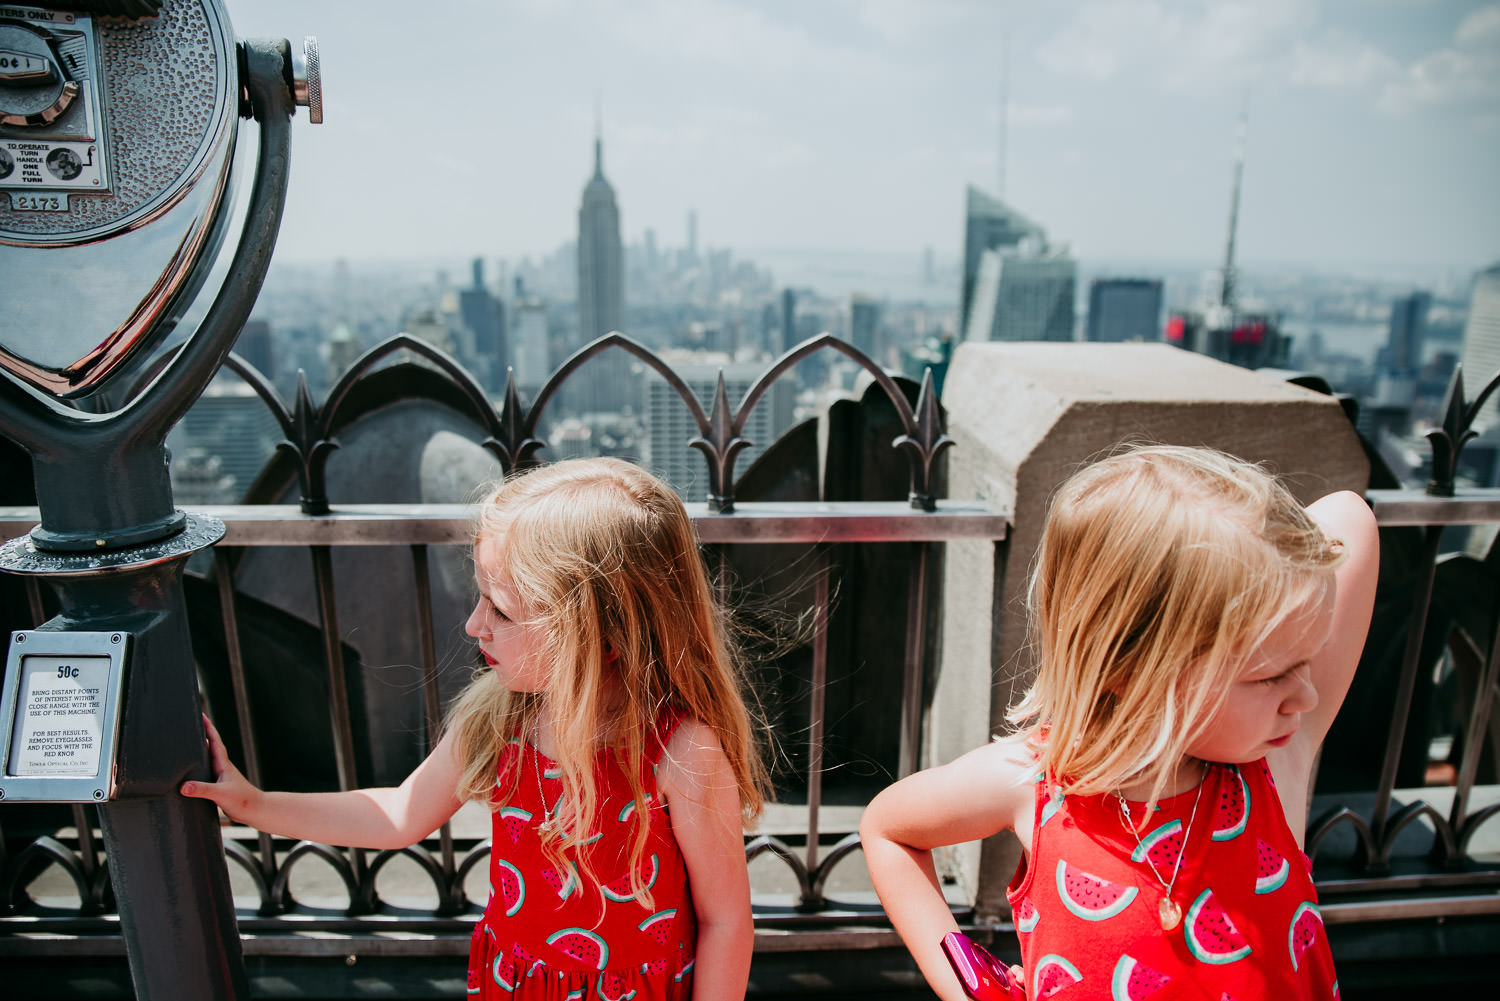 Two little girls look bored at Top of the Rock.